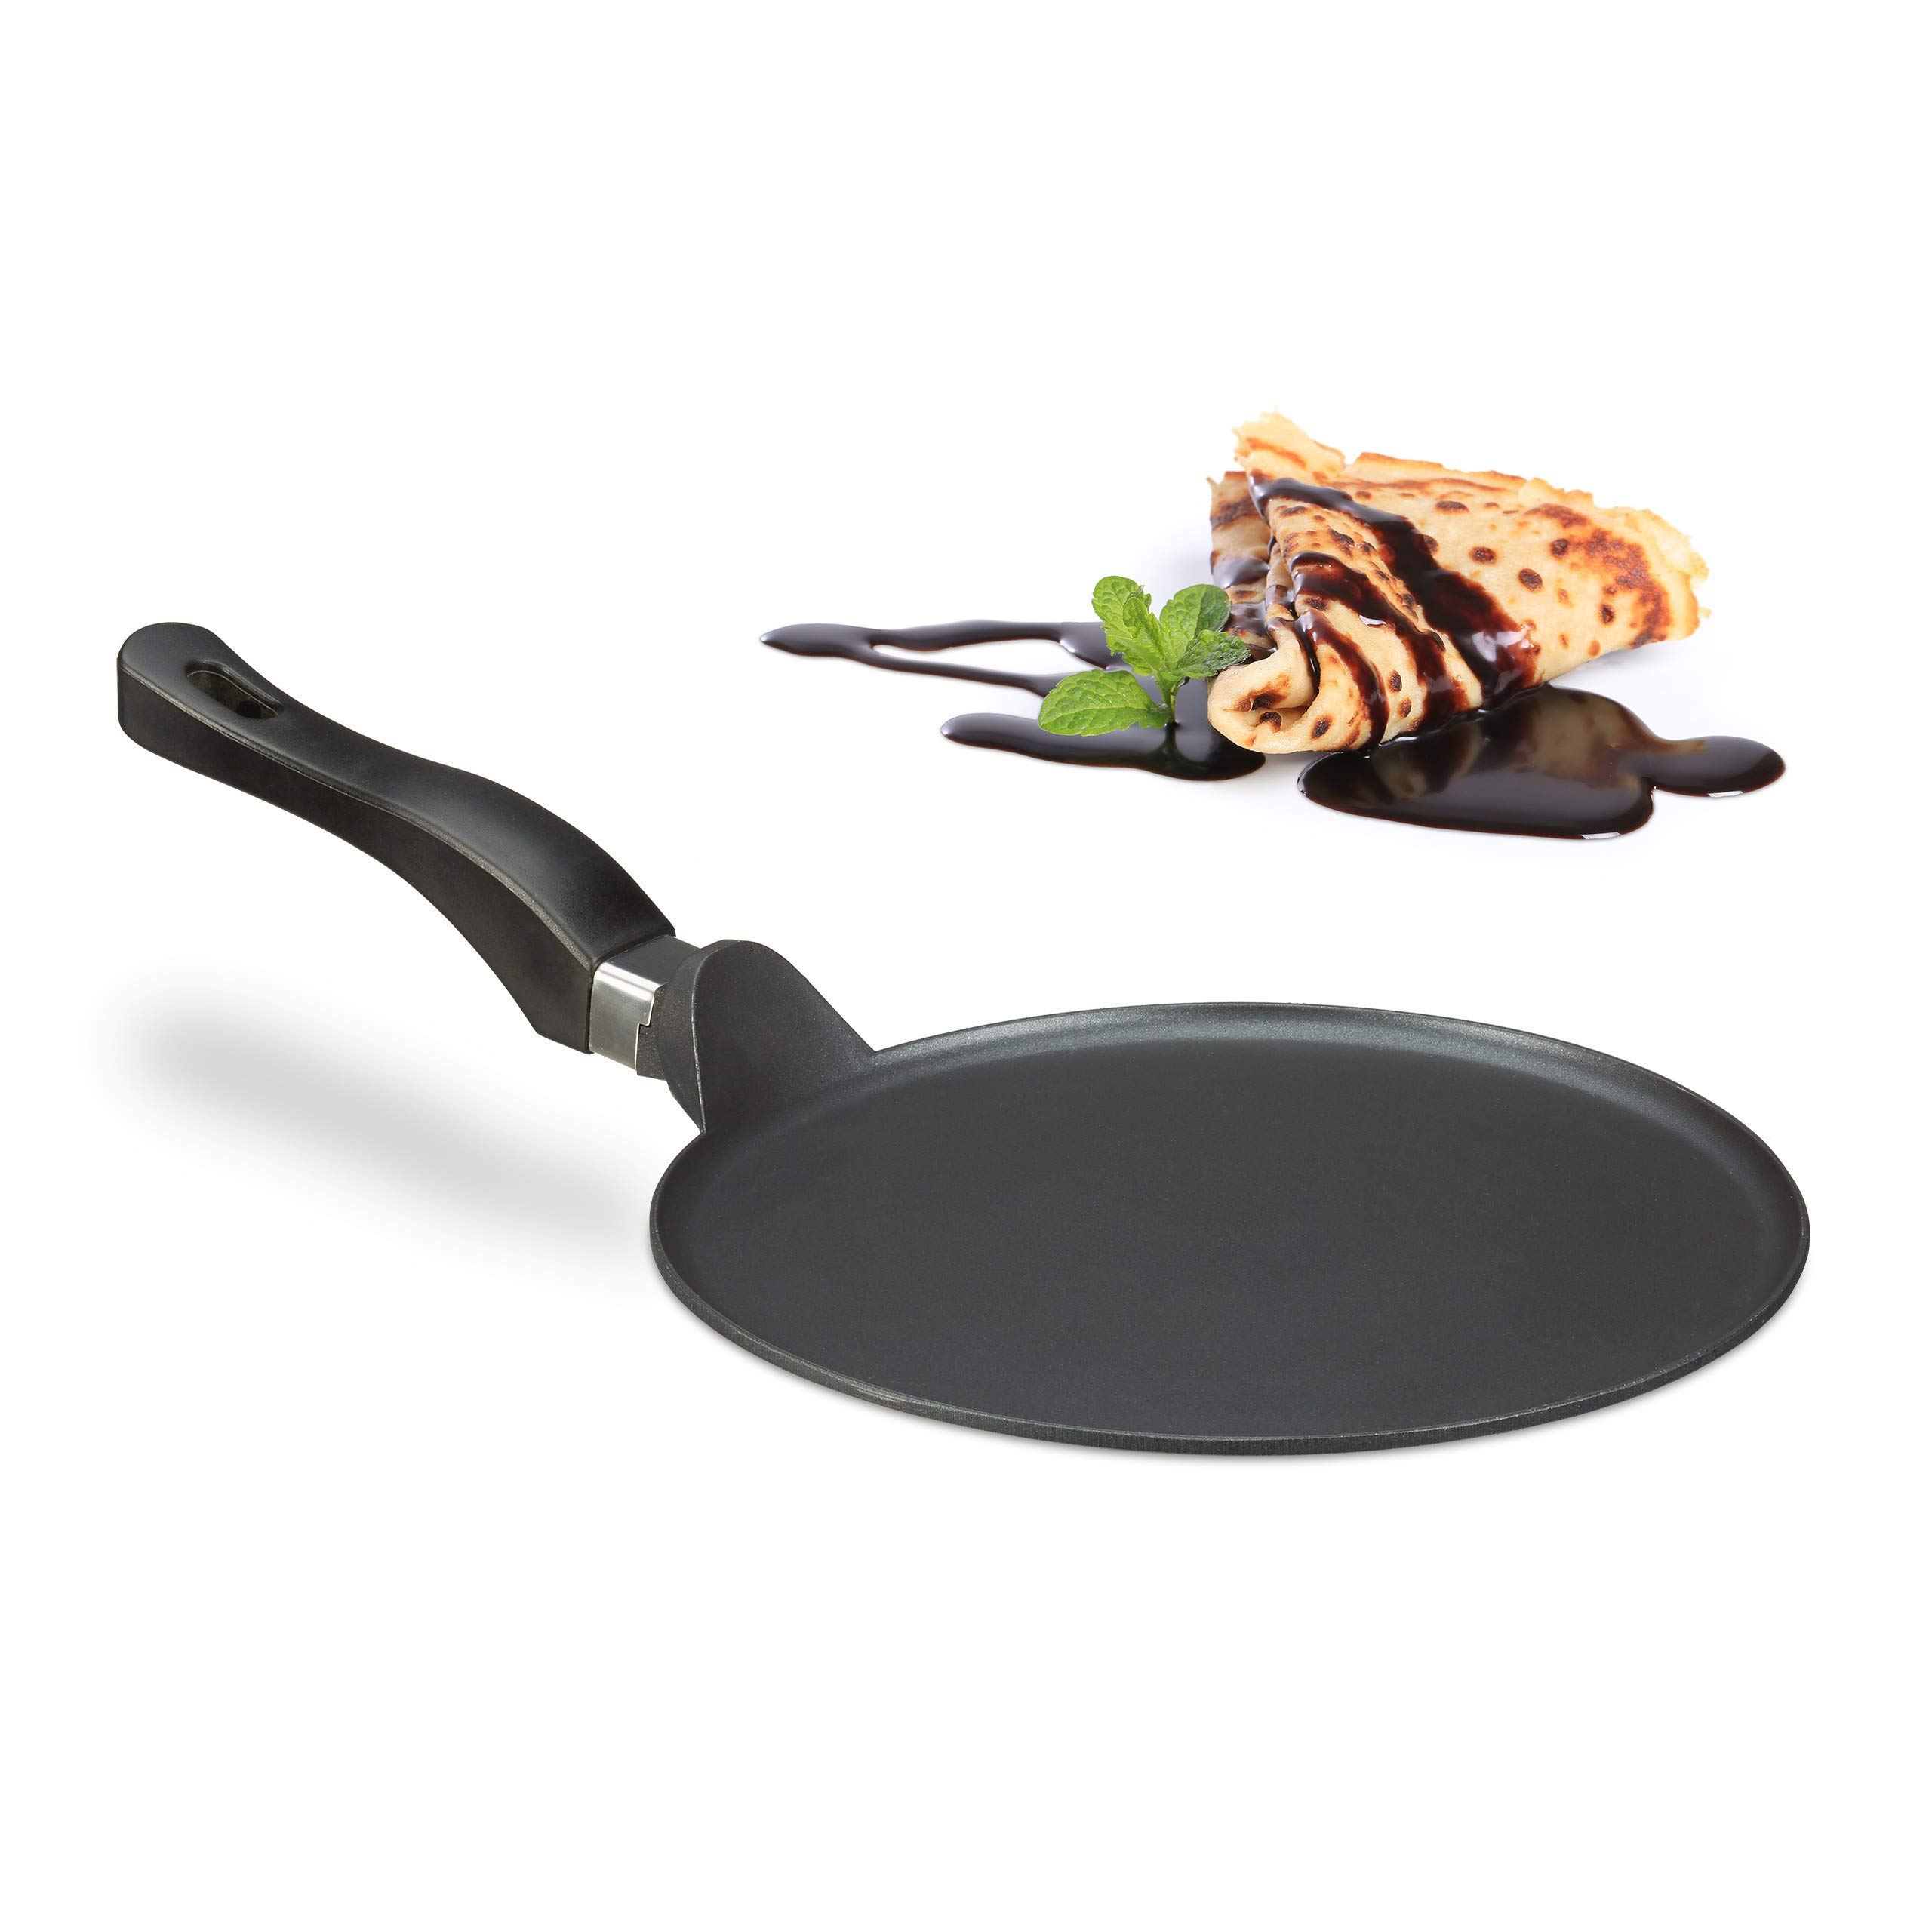 Relaxdays Crepe Pan, 25 cm, Non-Stick Coating, Cast Aluminium Pancake Skillet, Easy to Clean, Extra-Flat, Black